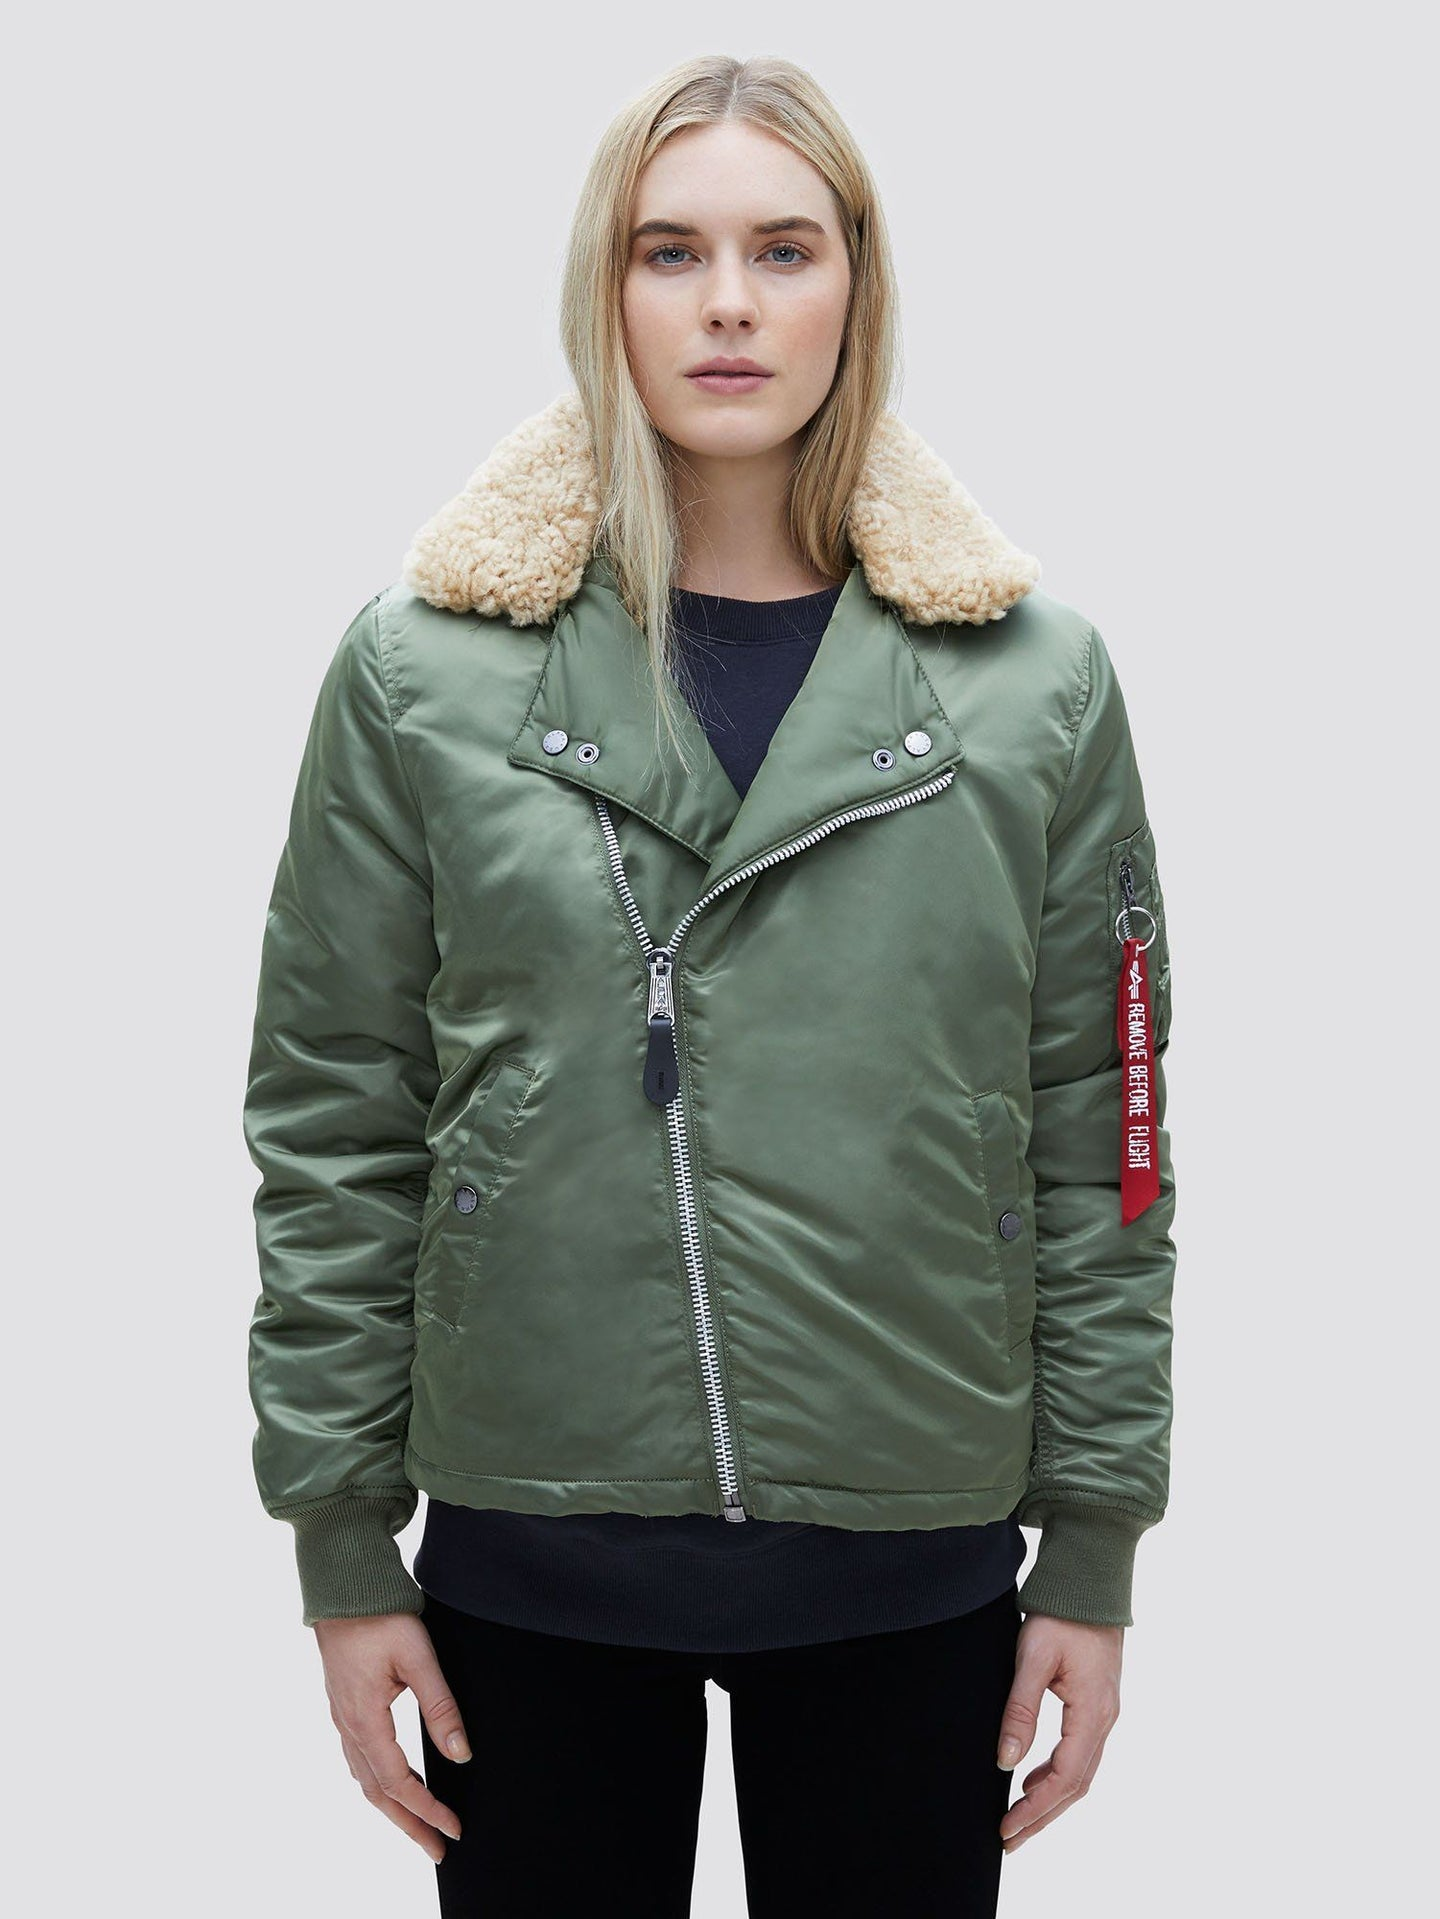 B-15 STRAIGHT HEM MOD BOMBER JACKET W SALE Alpha Industries SAGE L